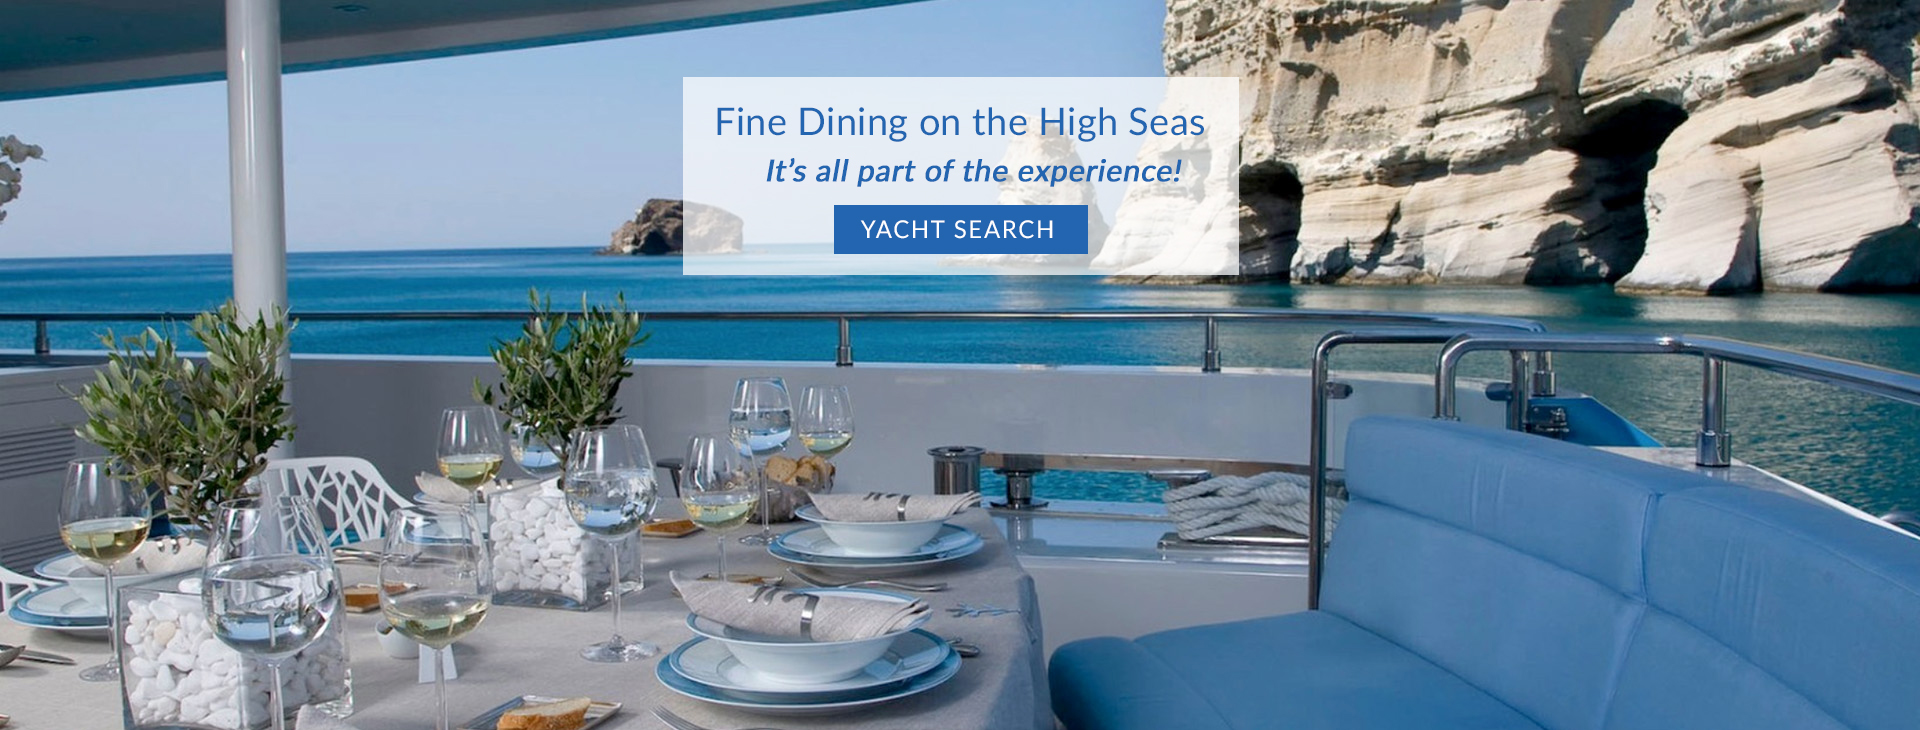 Fine dining al fresco on the motor yacht BARENTS SEA in the Mediterranean